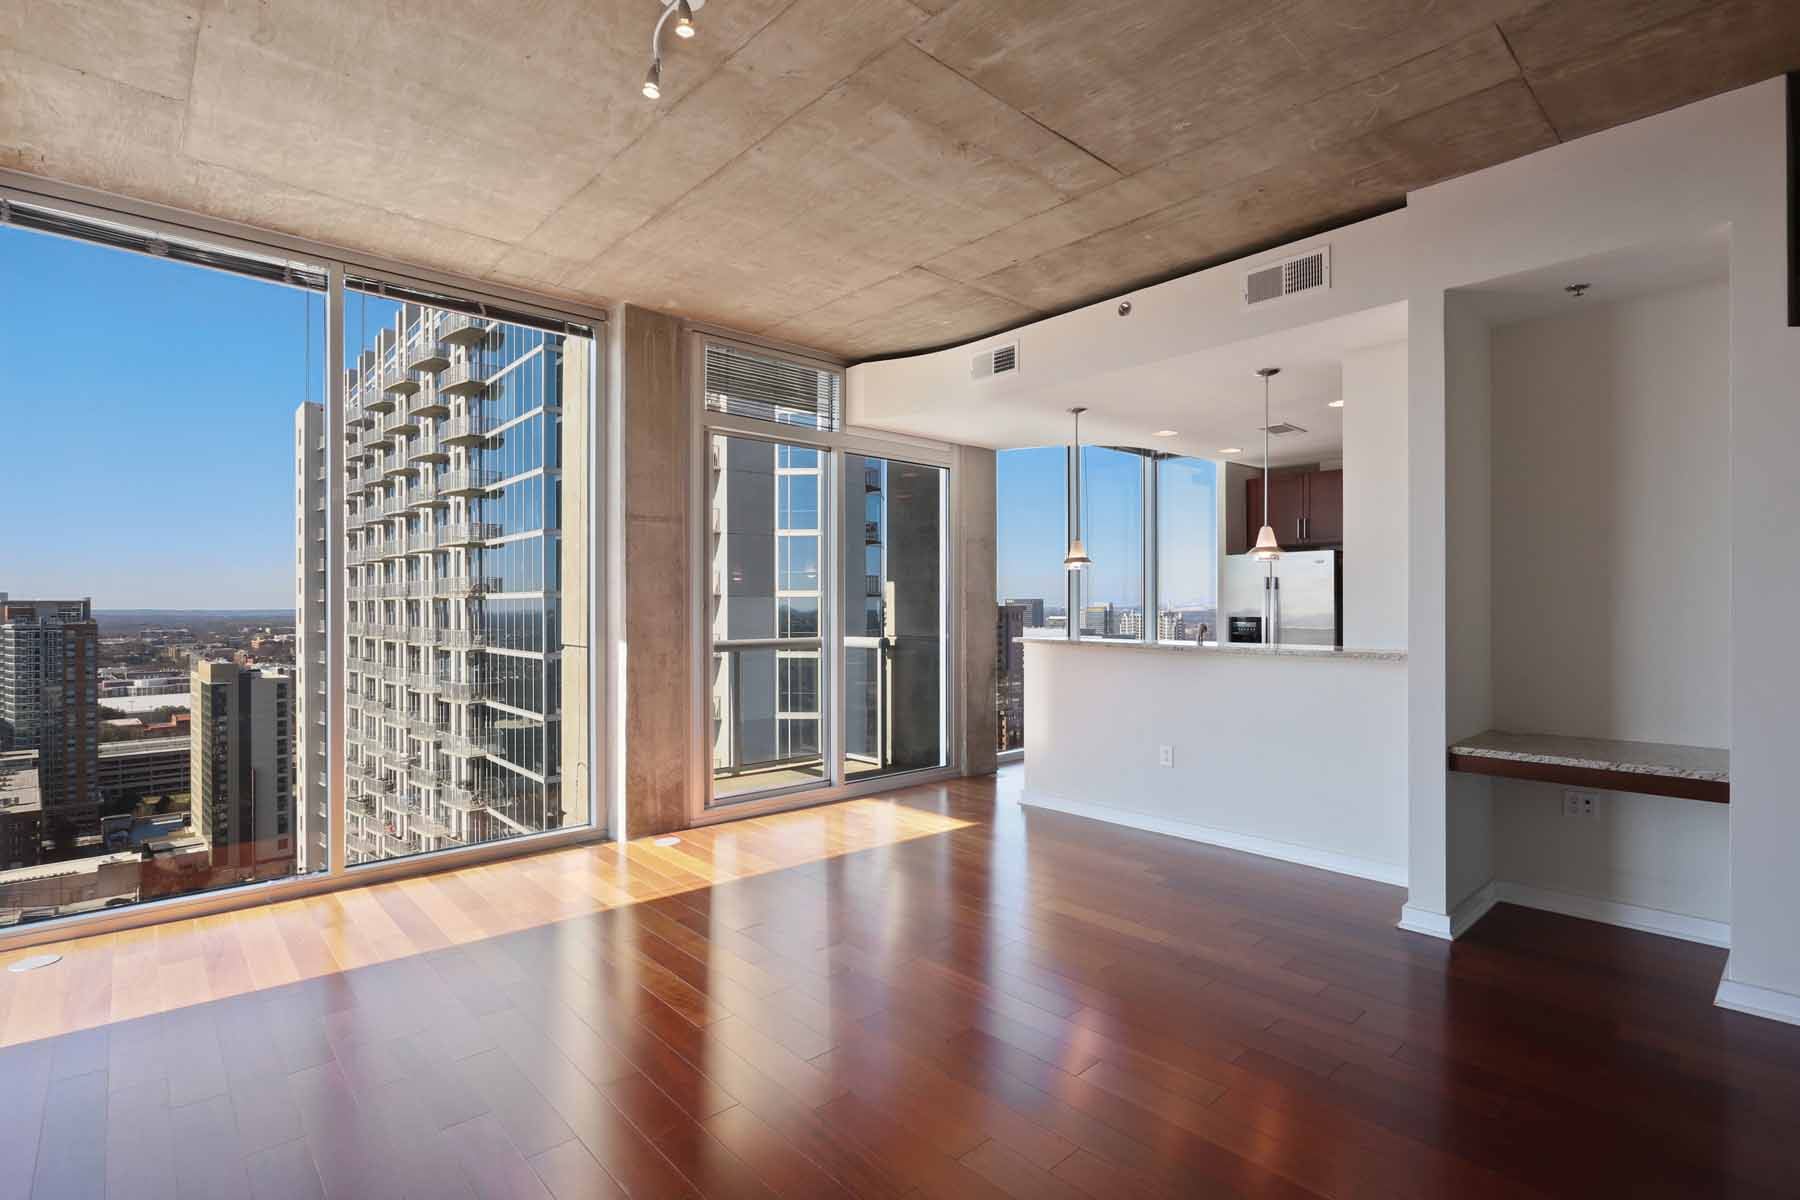 Condominio por un Venta en Fantastic opportunity on one of the largest 1 bedroom floor plans at Viewpoint! 855 Peachtree Street NE No. 2201 Atlanta, Georgia 30308 Estados Unidos